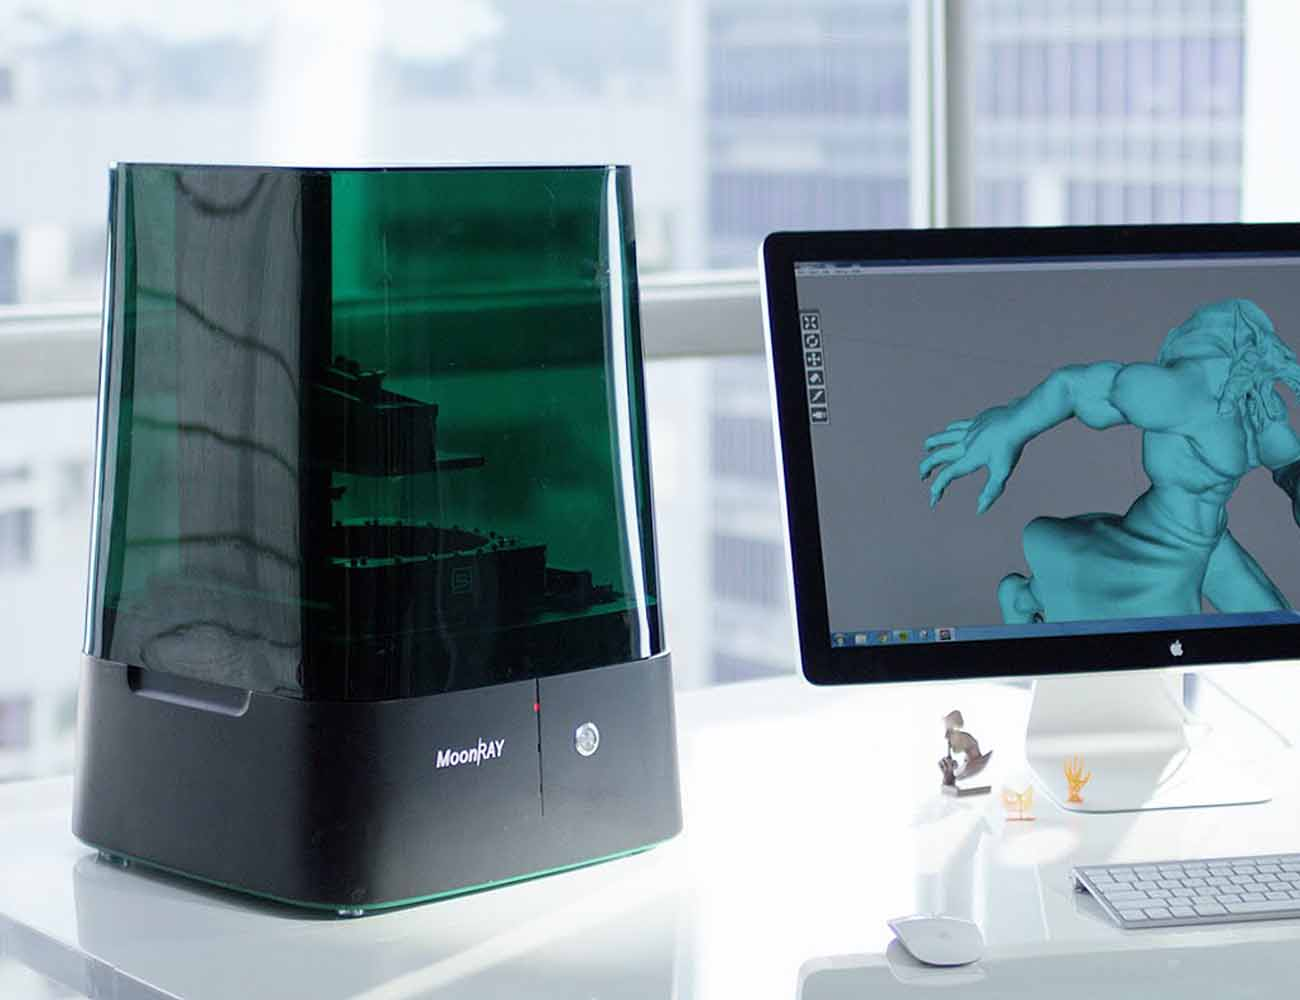 MoonRay+%26%238211%3B+World%26%238217%3Bs+Best+Desktop+3D+Printer